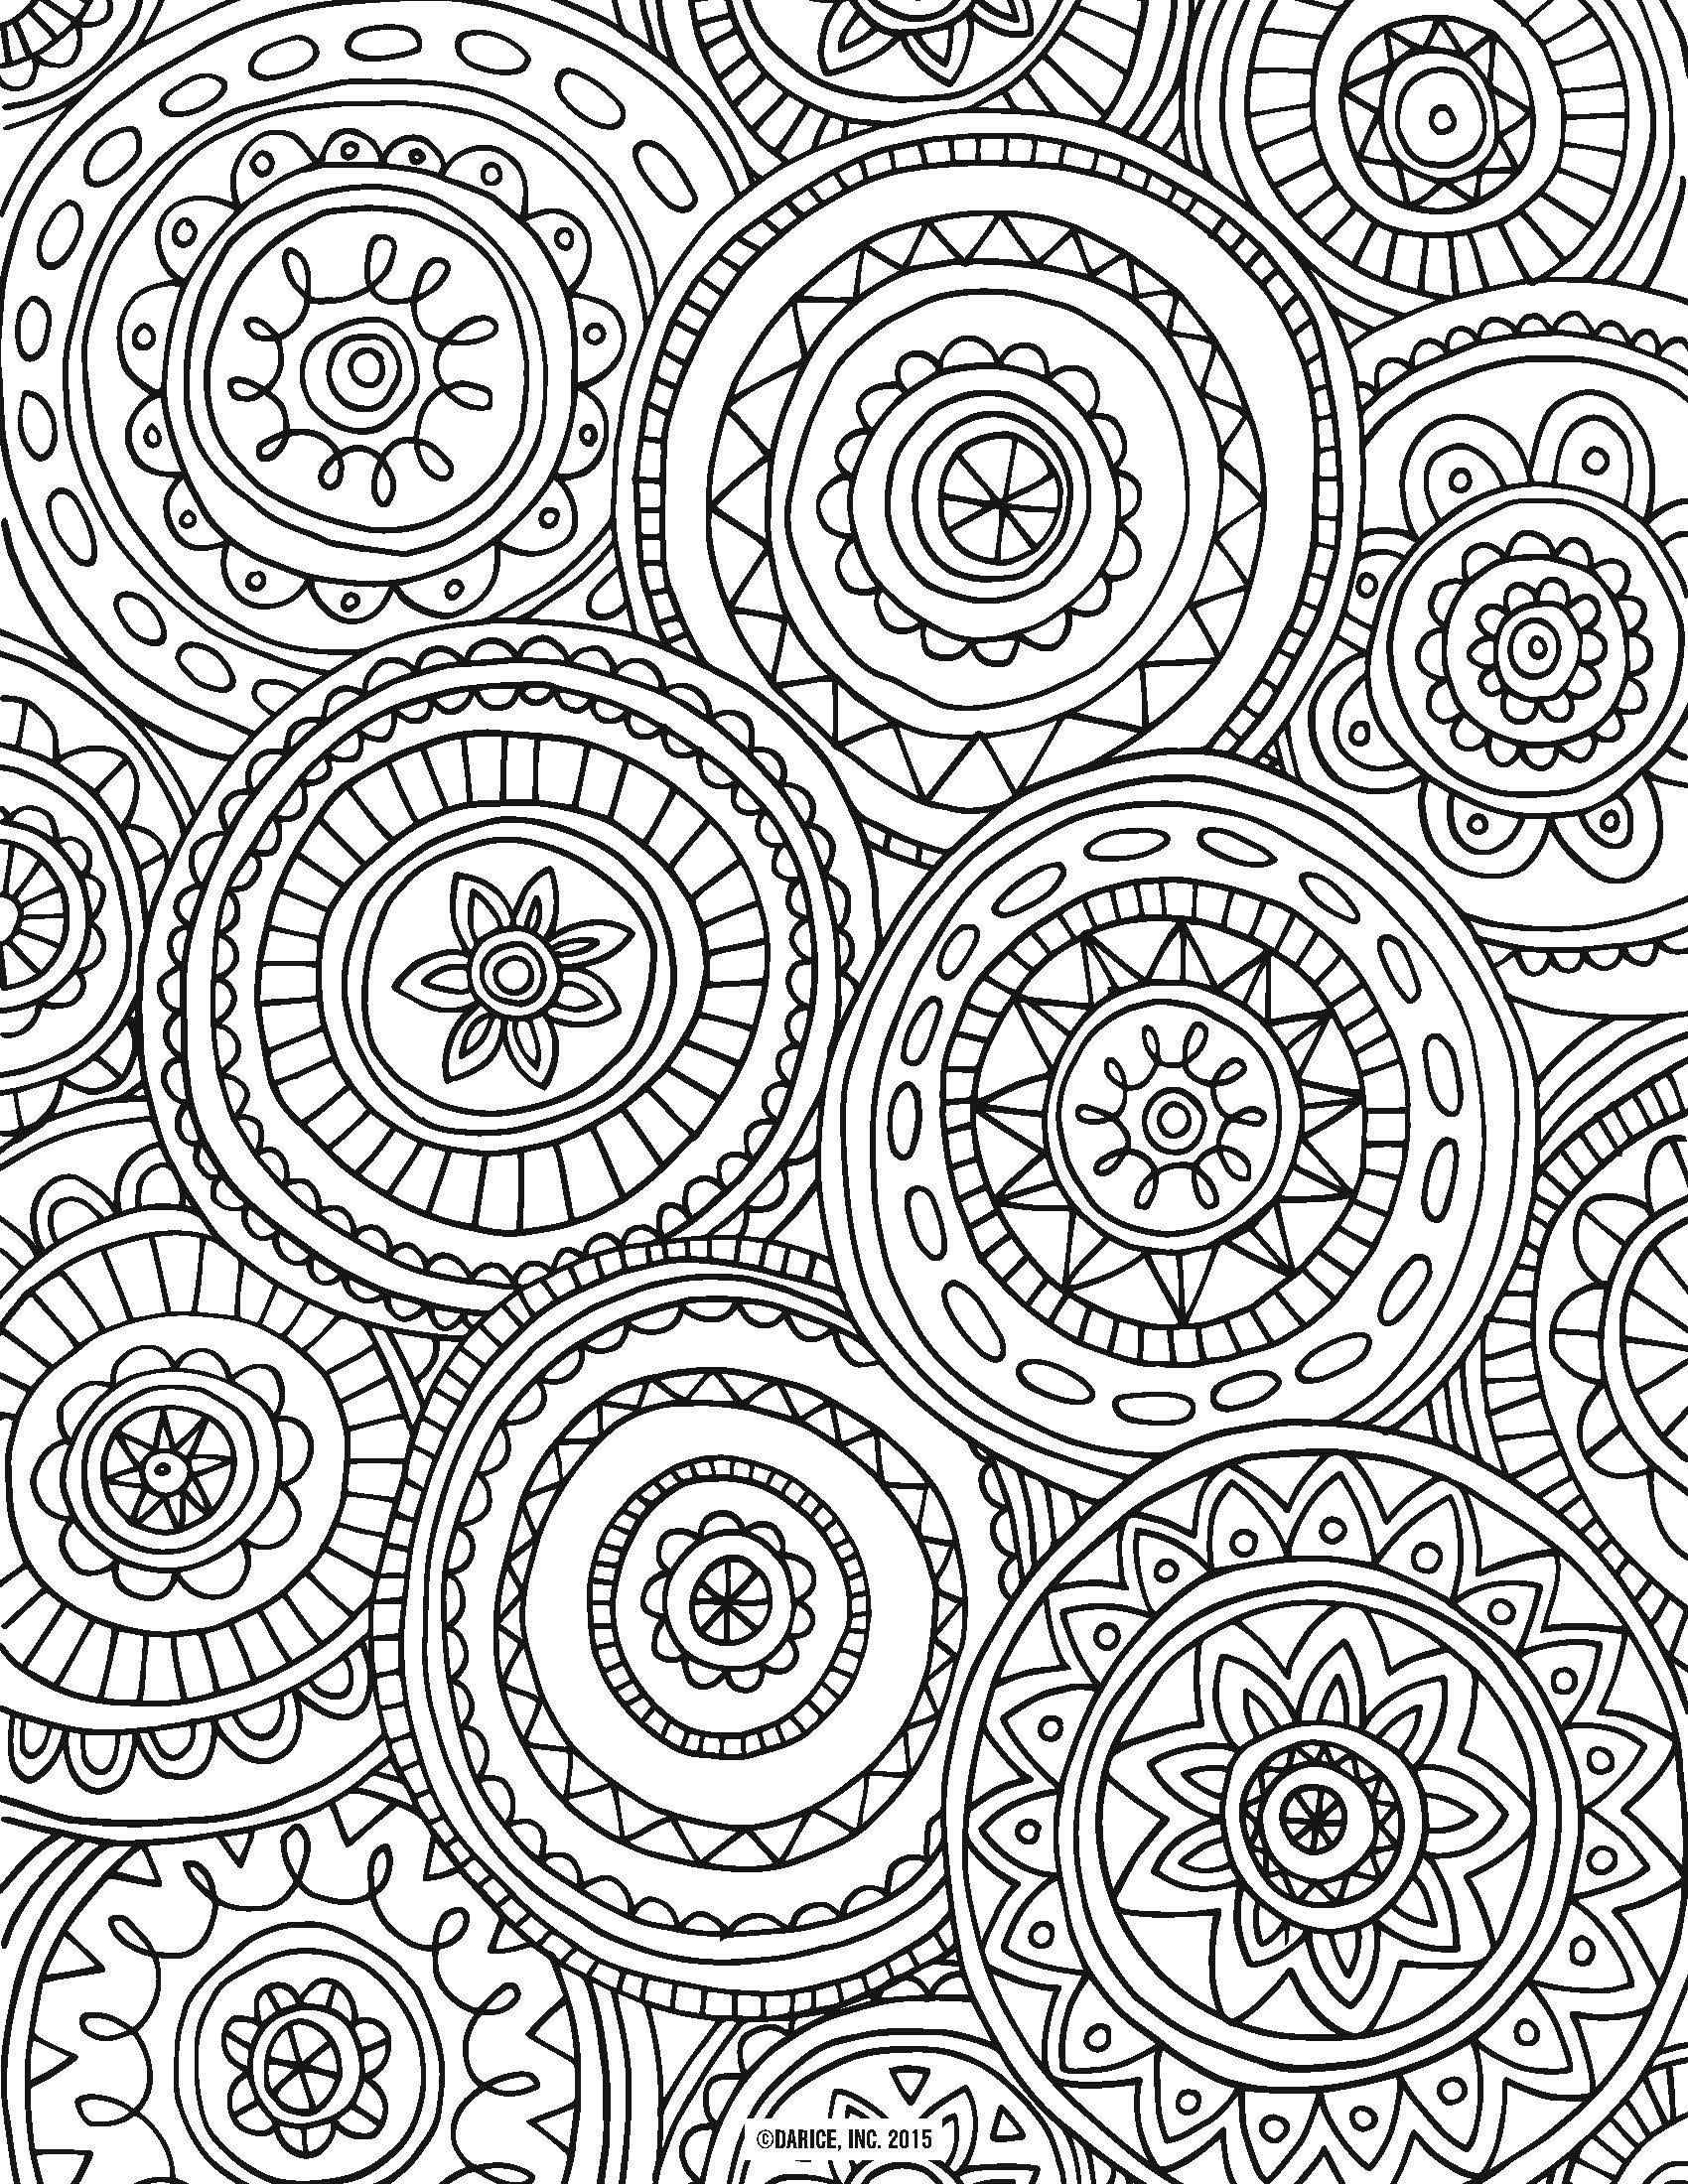 Coloring Books Printable Colouring Patterns Awesome Free Adult Coloring Pages Patterns Download Free Clip Art Printable Colouring Patterns Bringing Coloring Home